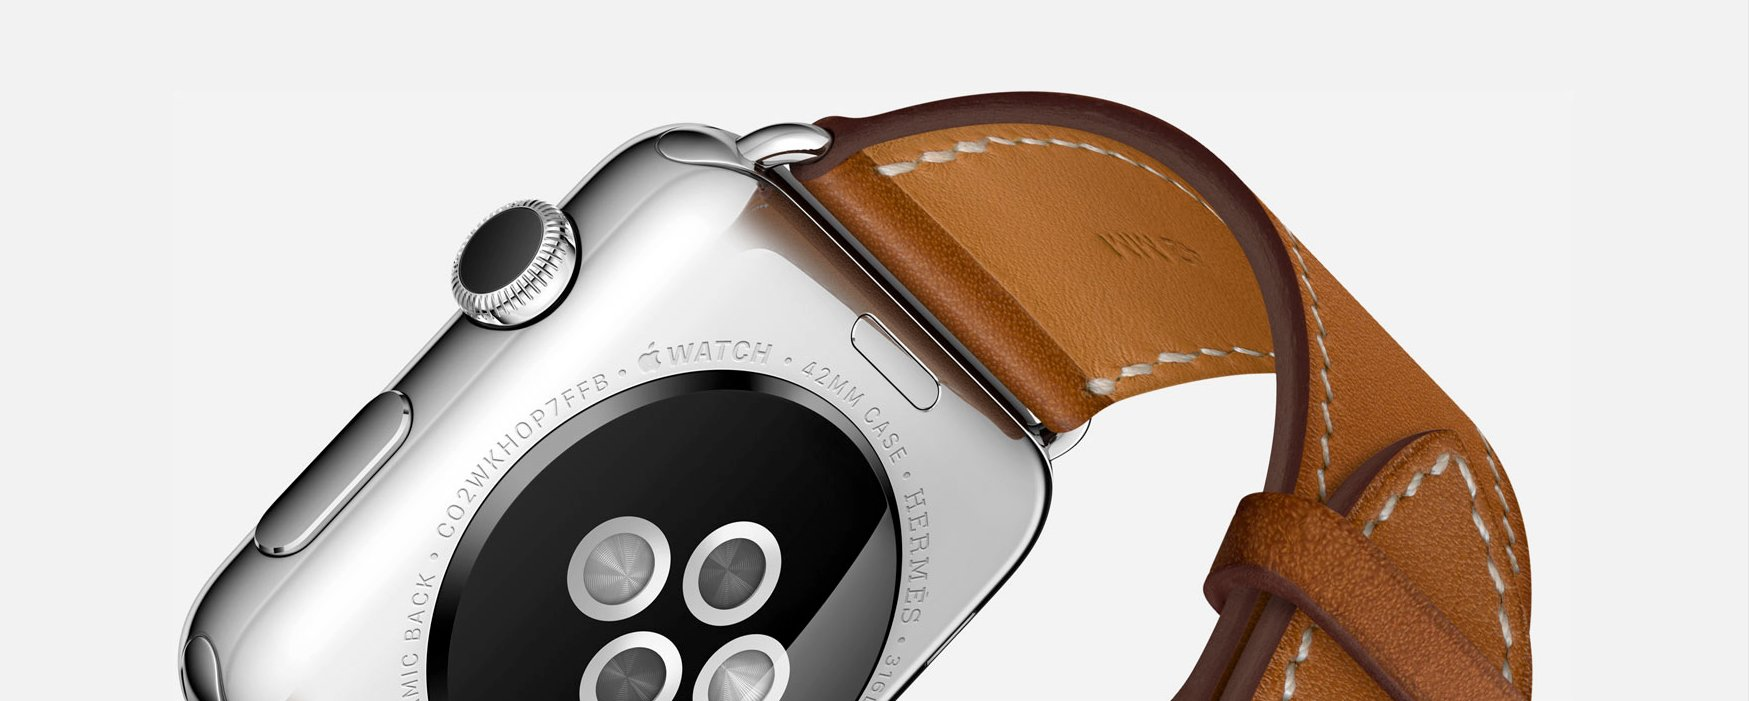 The Apple Watch Hermès collection is now available to purchase